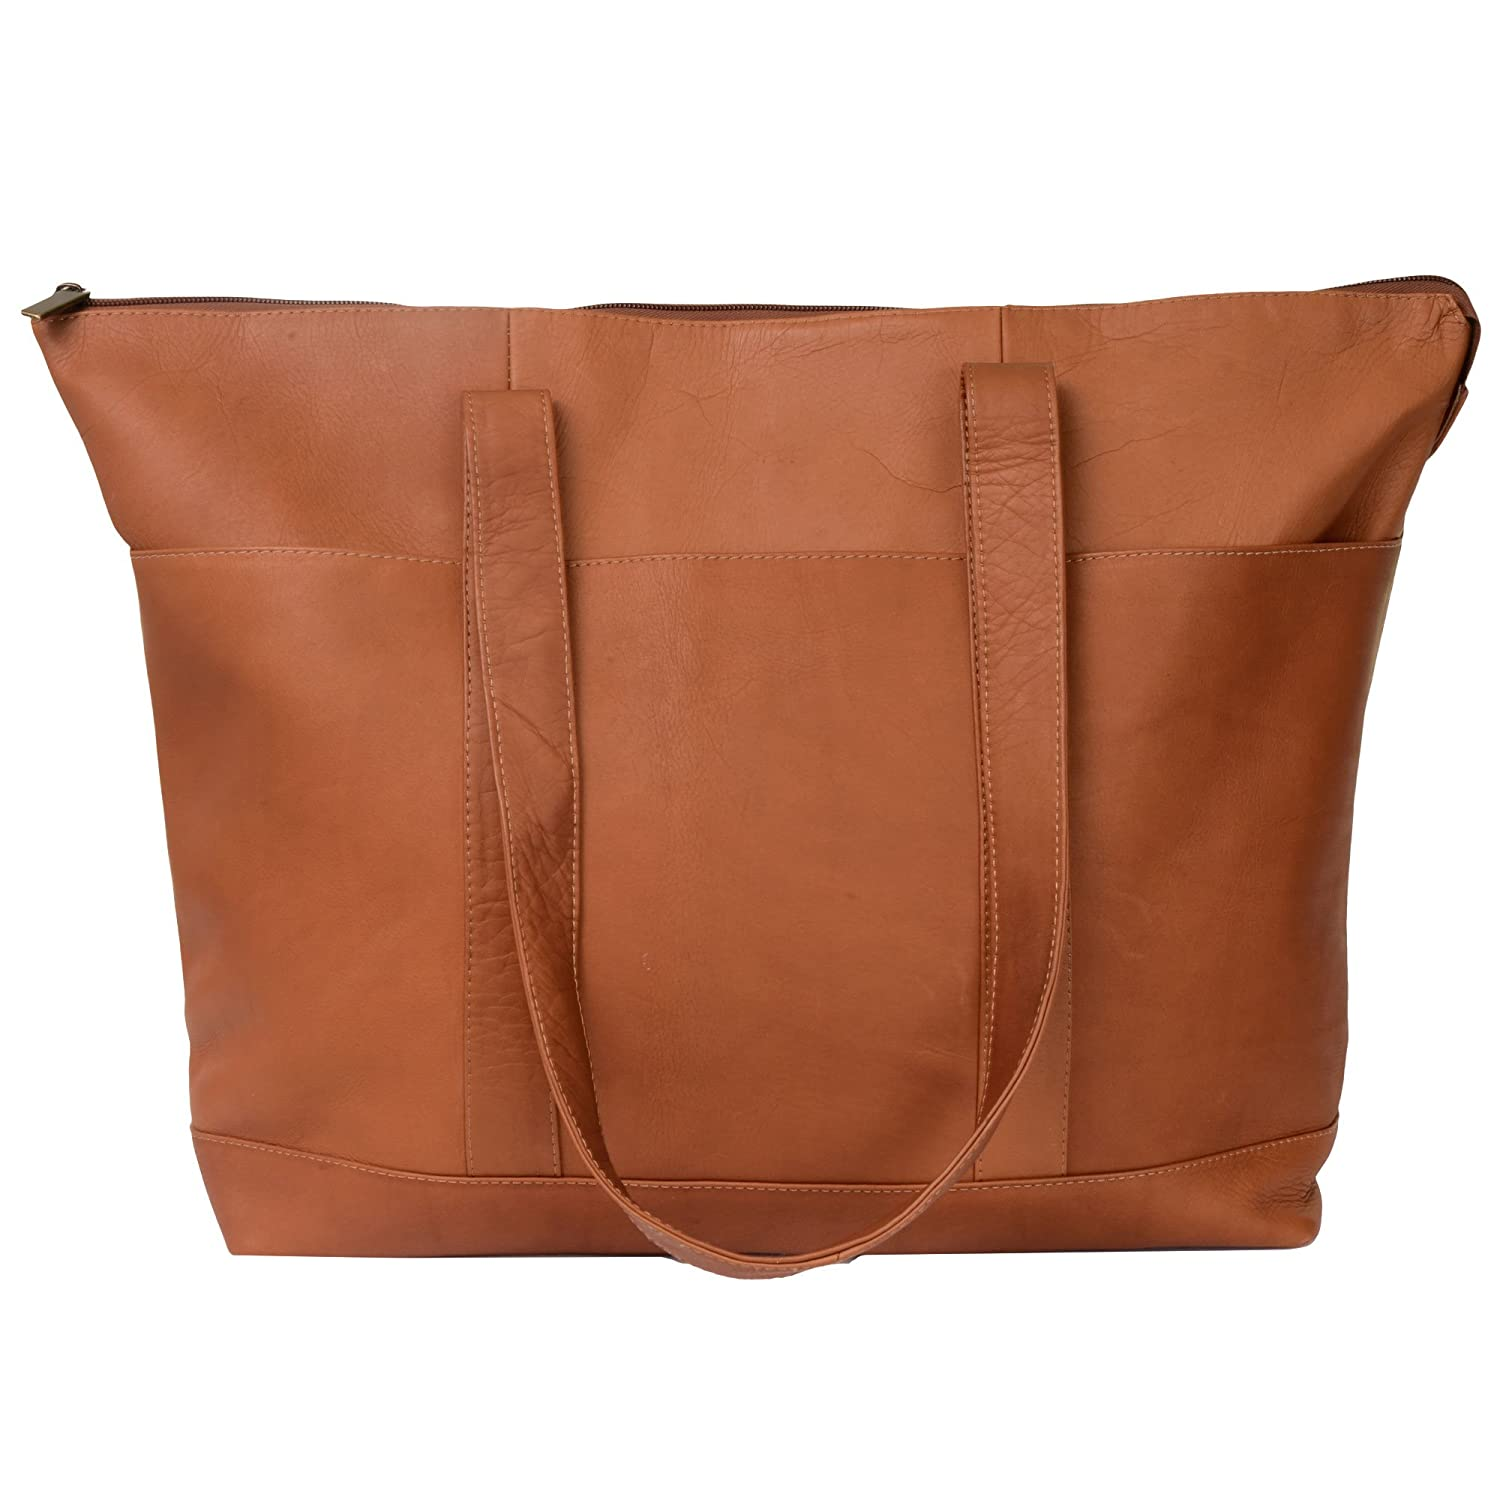 Andrew Philips Vaqueta Napa Womens Large Casual Tote in Tan